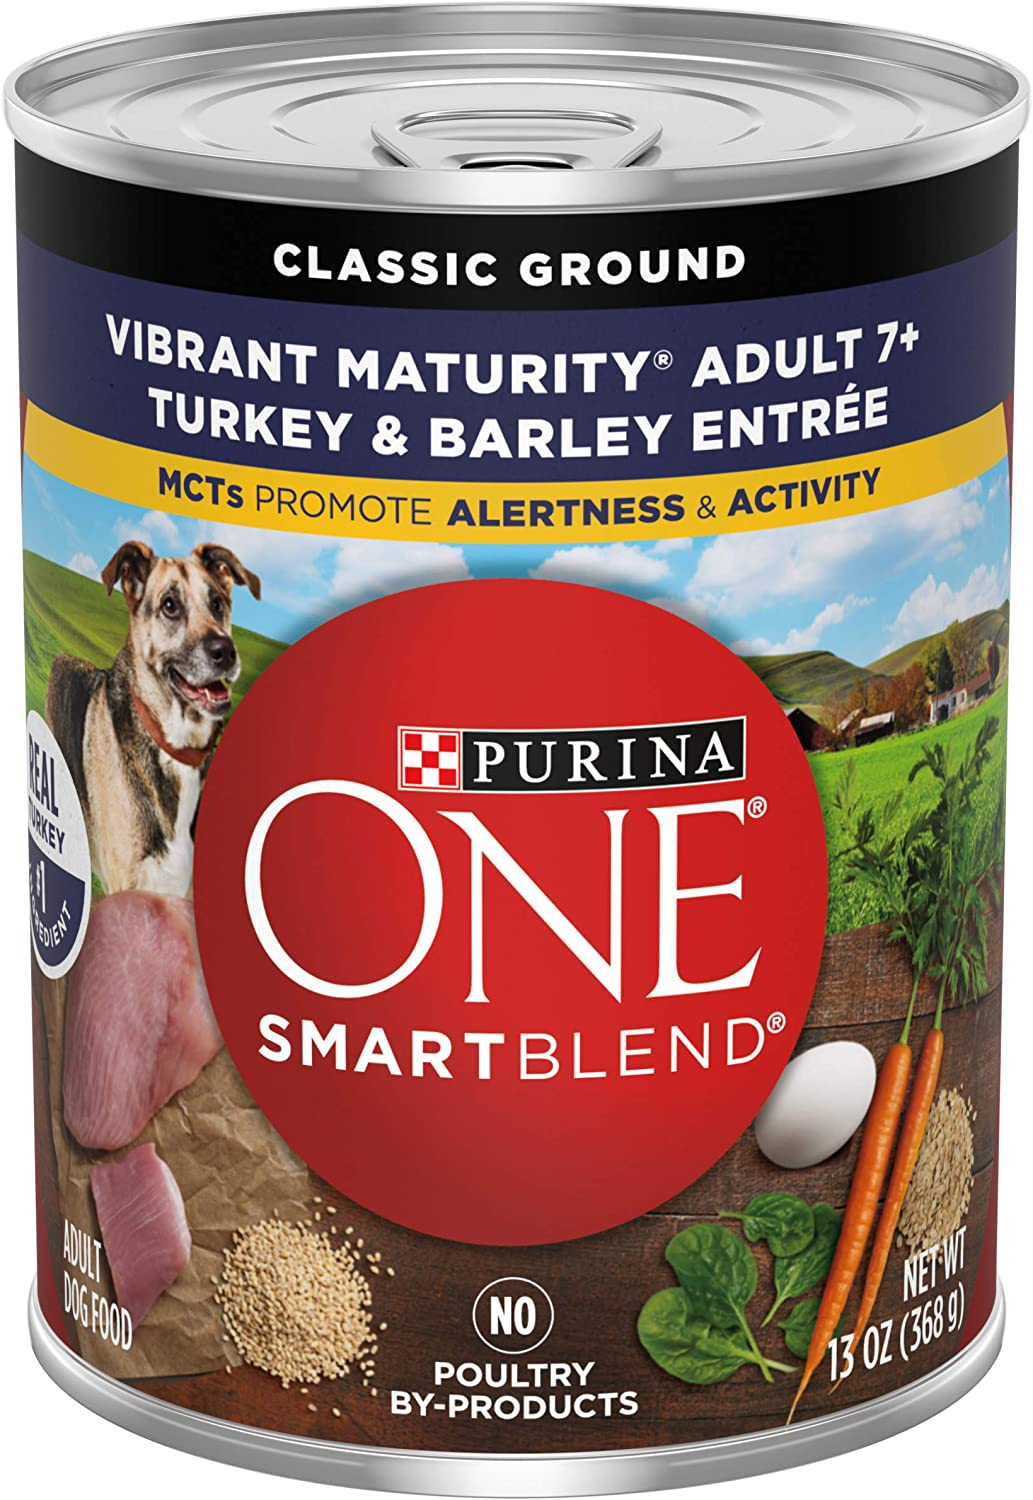 Purina ONE SmartBlend Vibrant Maturity Senior 7+ Formula Dog Food